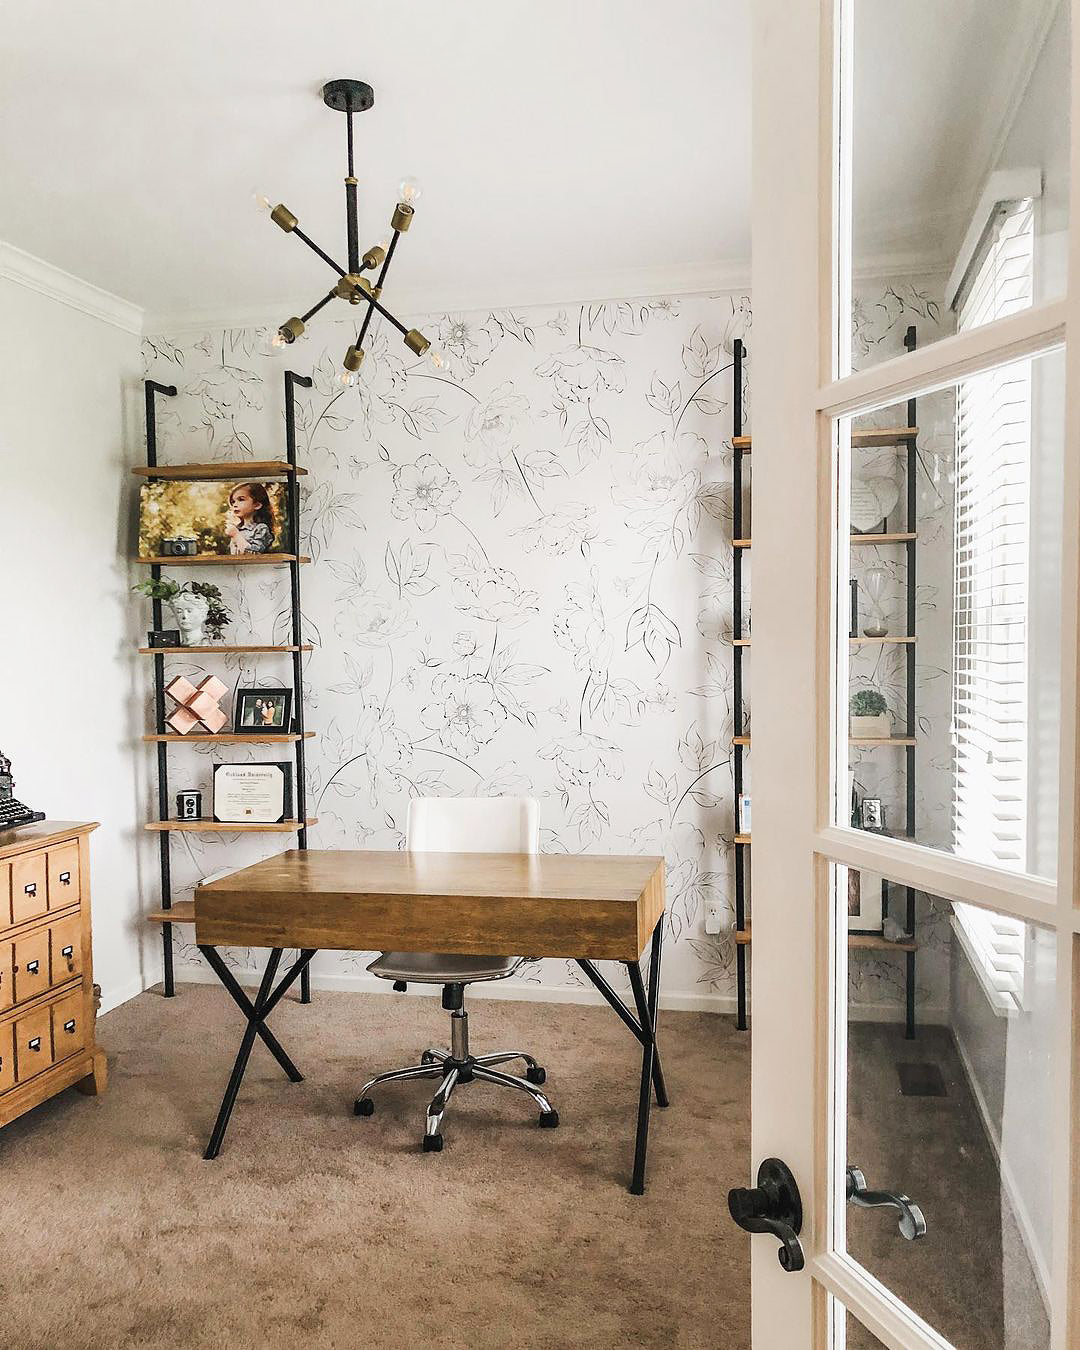 Modern farmhouse chic style home office interior design with floral removable wallpaper